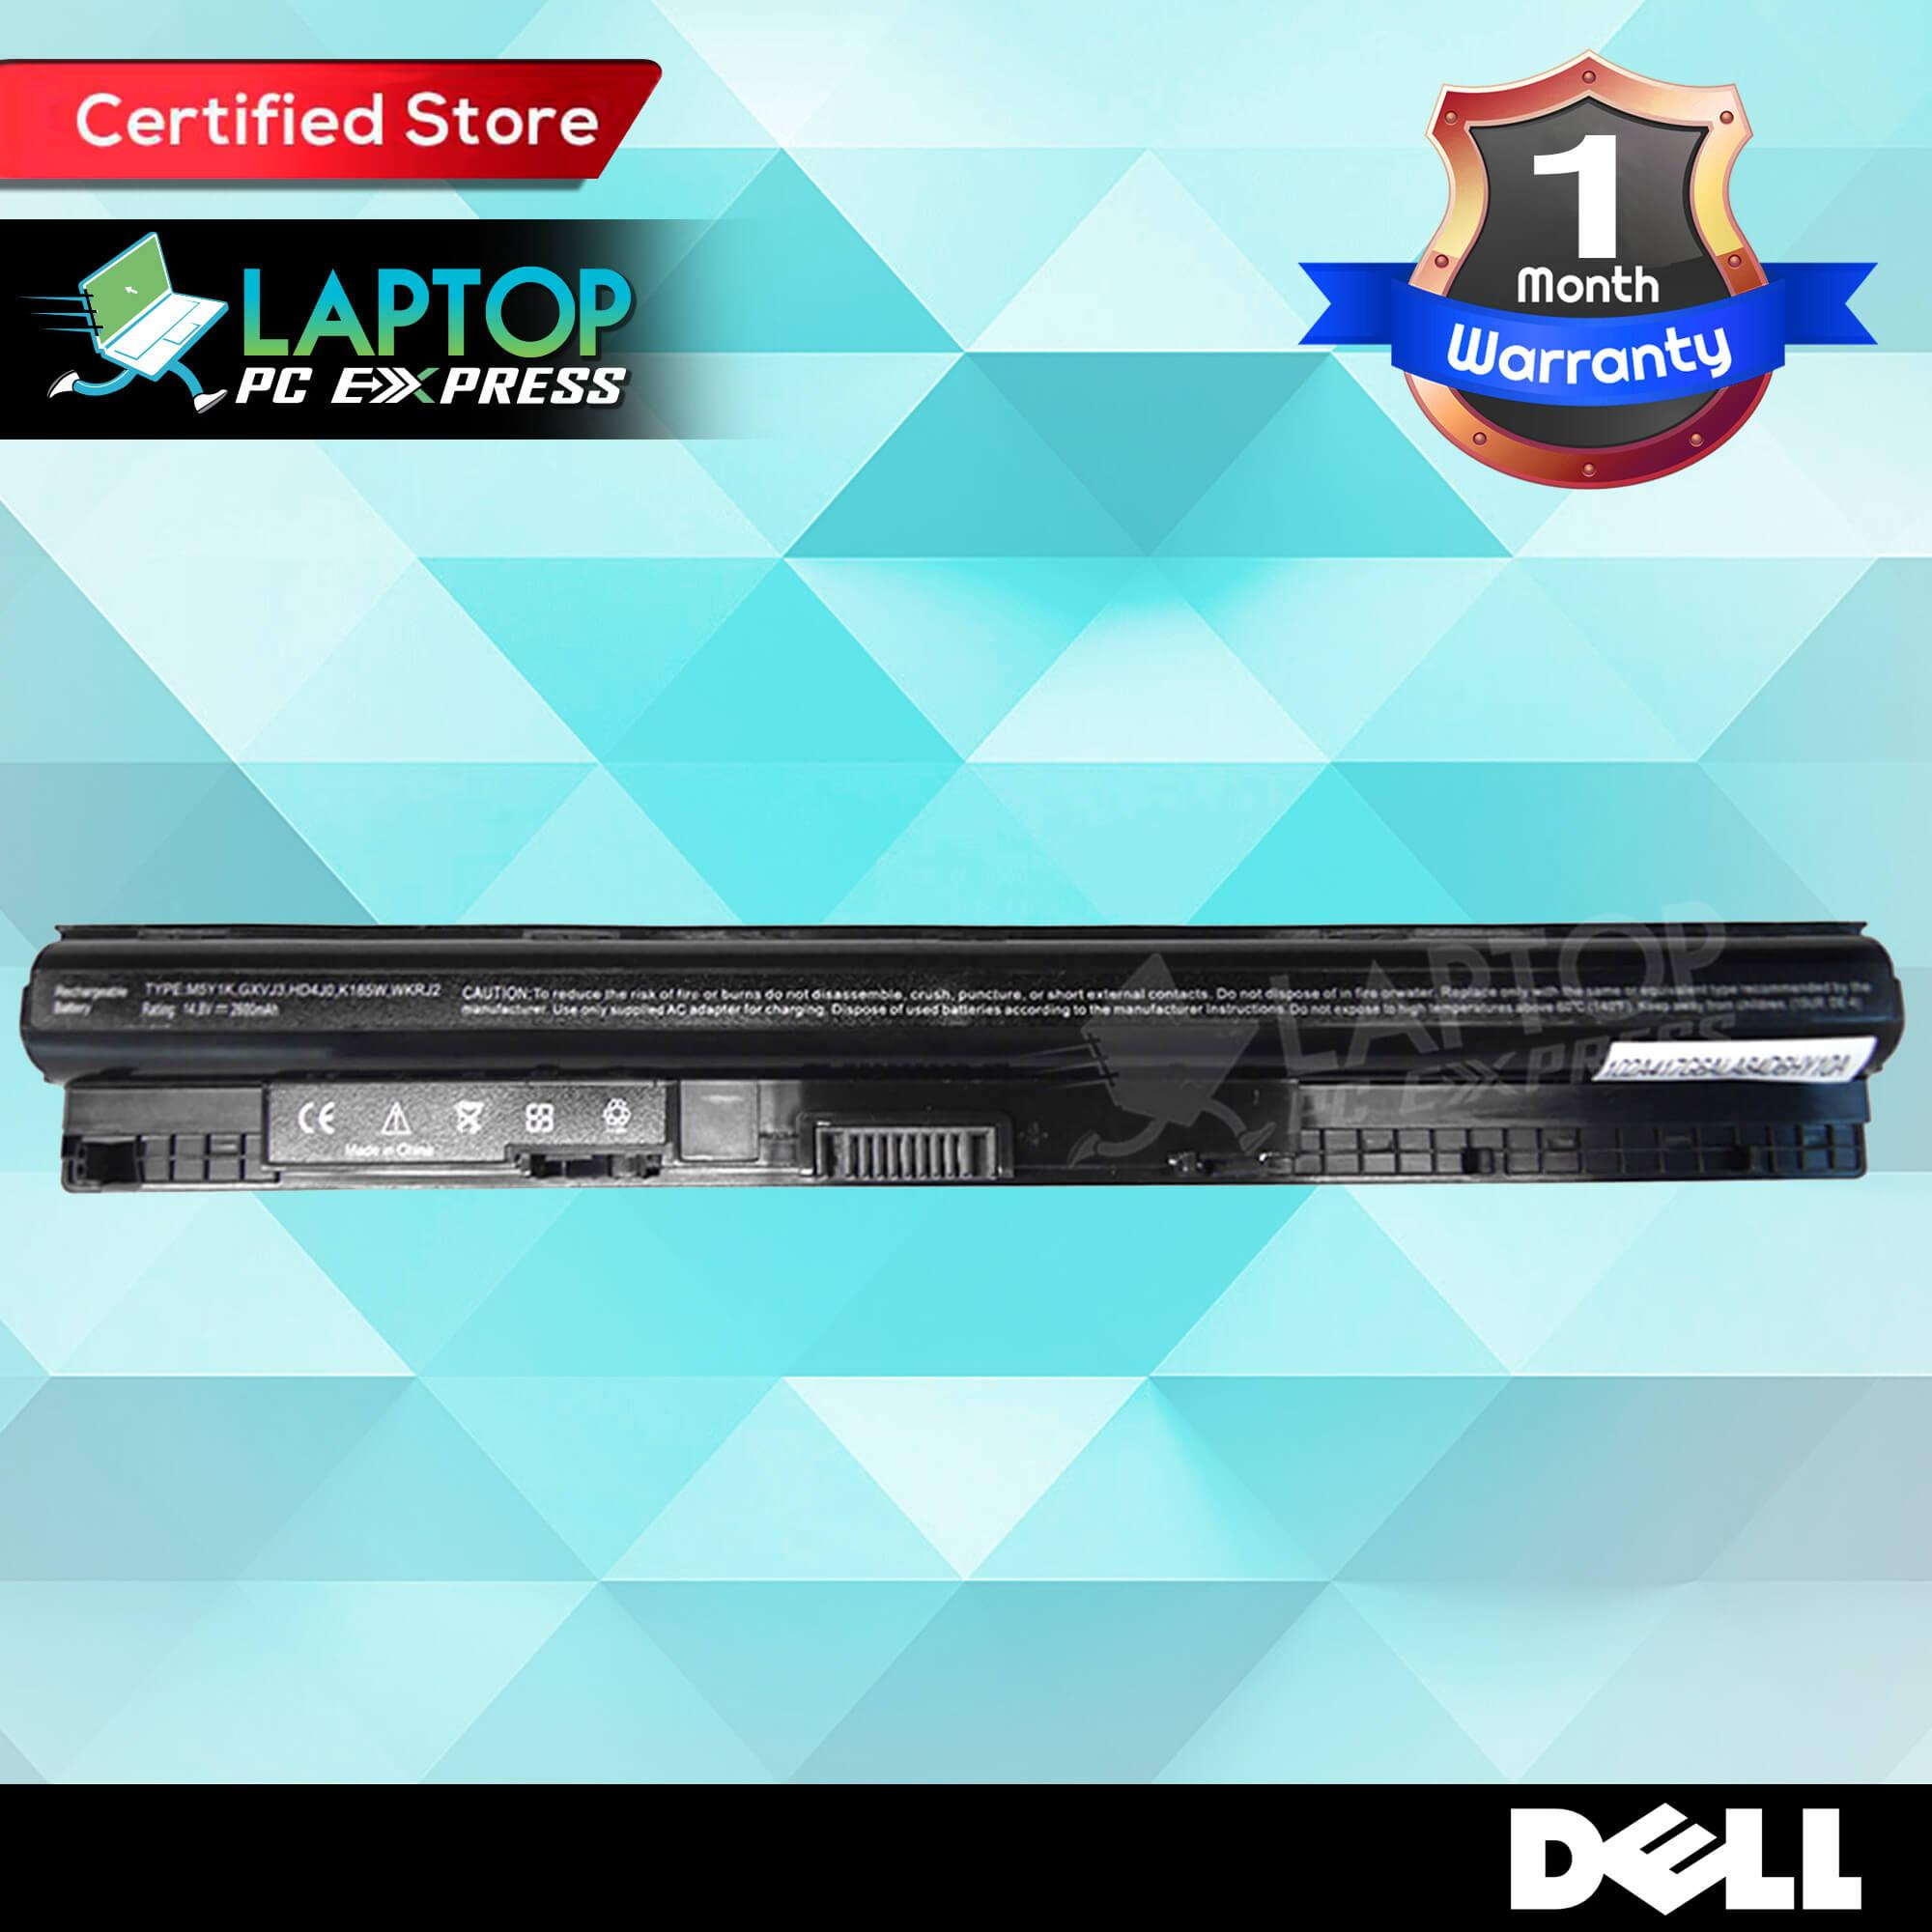 Laptop Battery for Dell Inspiron 15 3000 Series 3558, 5451, 5455, 5551,  5555, 5558, 5758 Vostro 3458, 3558 Inspiron 14 Series Inspiron N3451  Inspiron